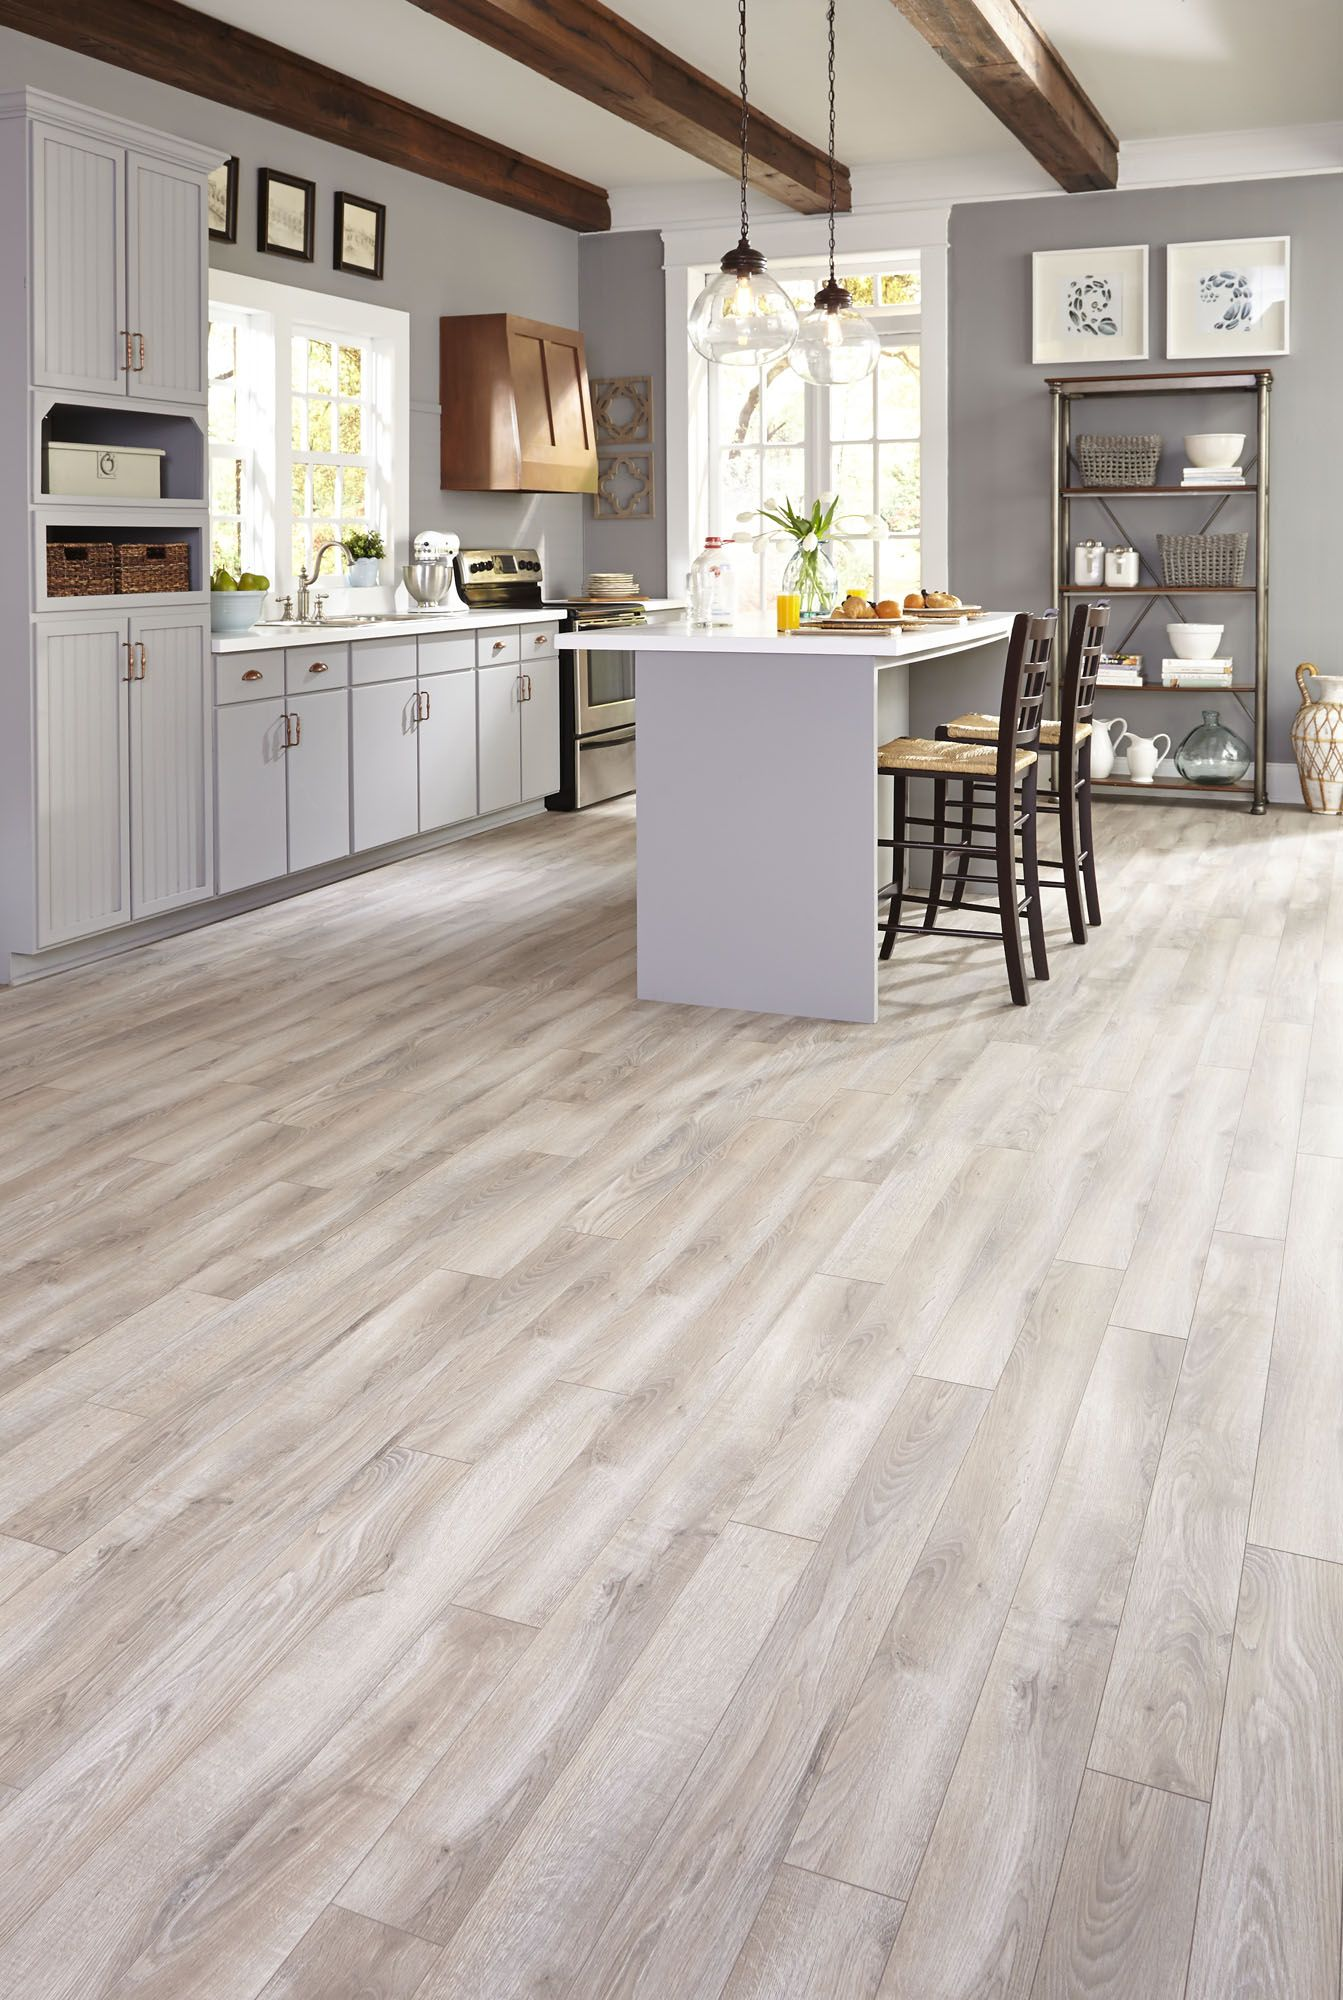 Laminate Floors For Kitchens Toklo By Swiss Krono Laminate My Floor Villa 12 Mm Collection